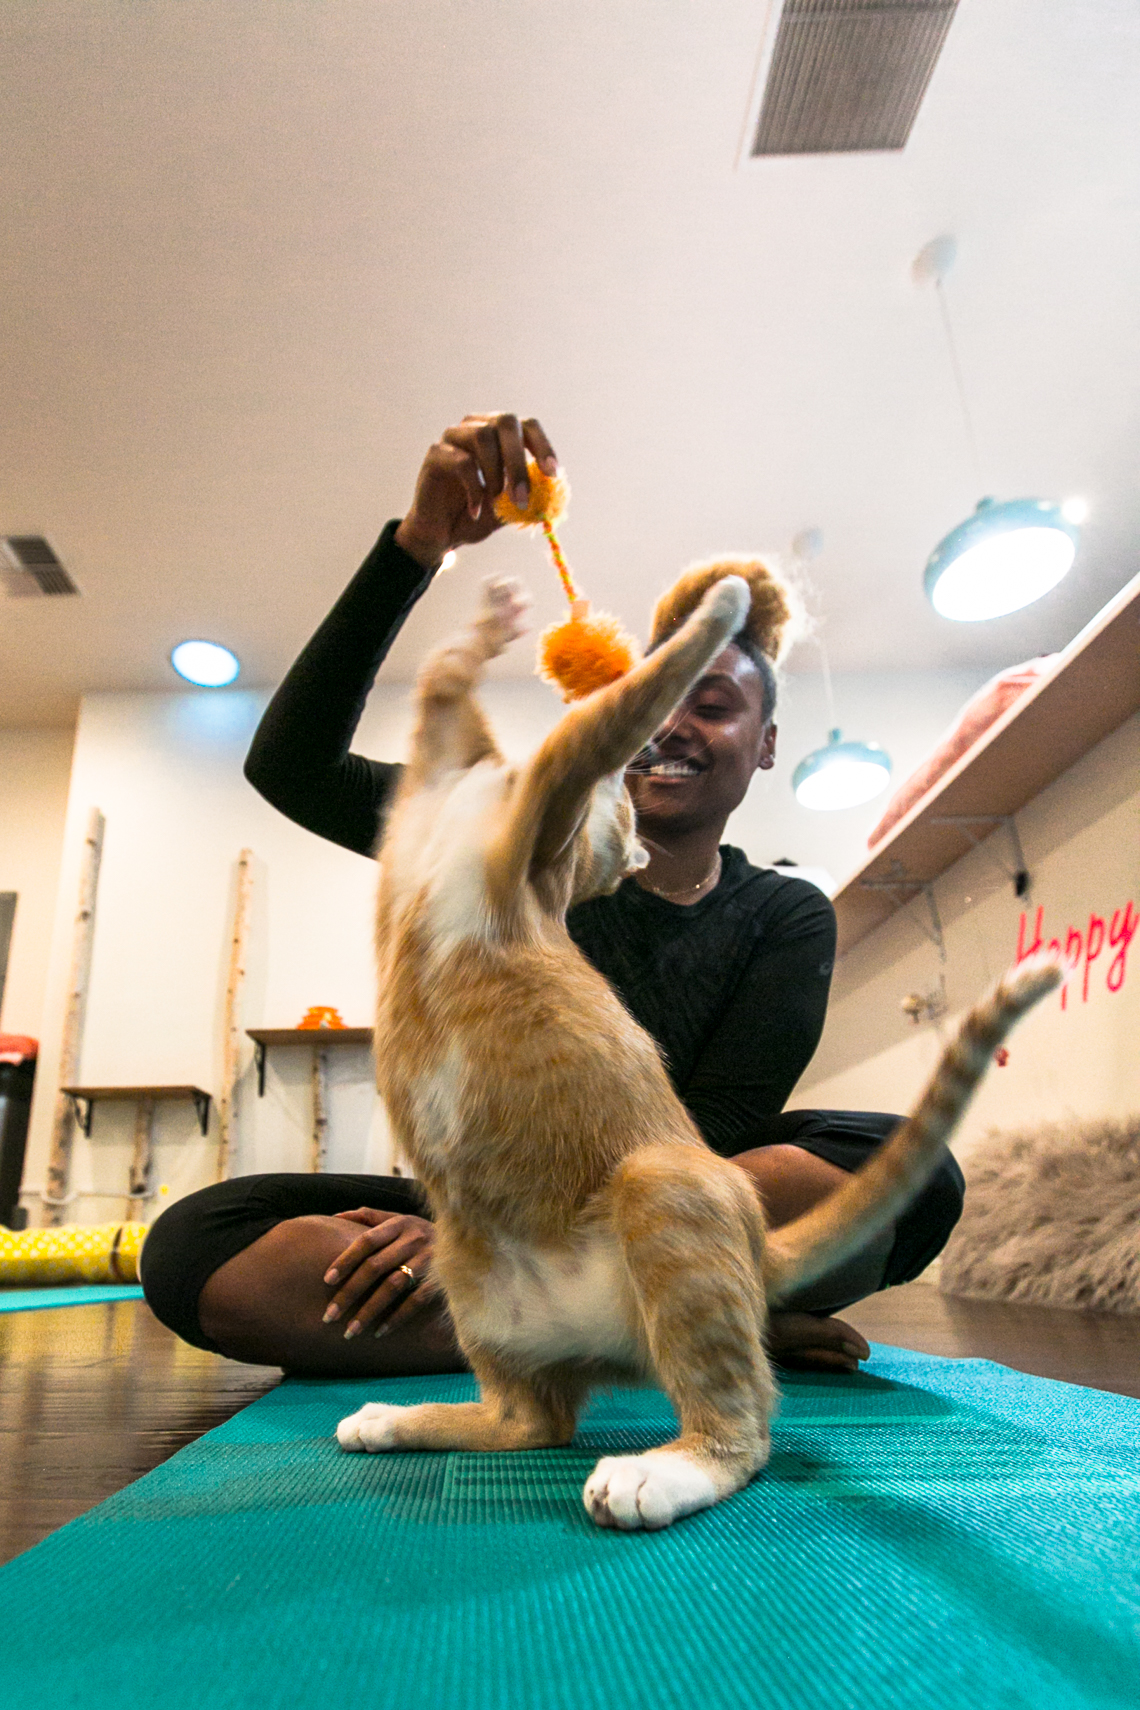 cat playing with toy-yoga-feline good social club-xmmtt-rsee-lcm